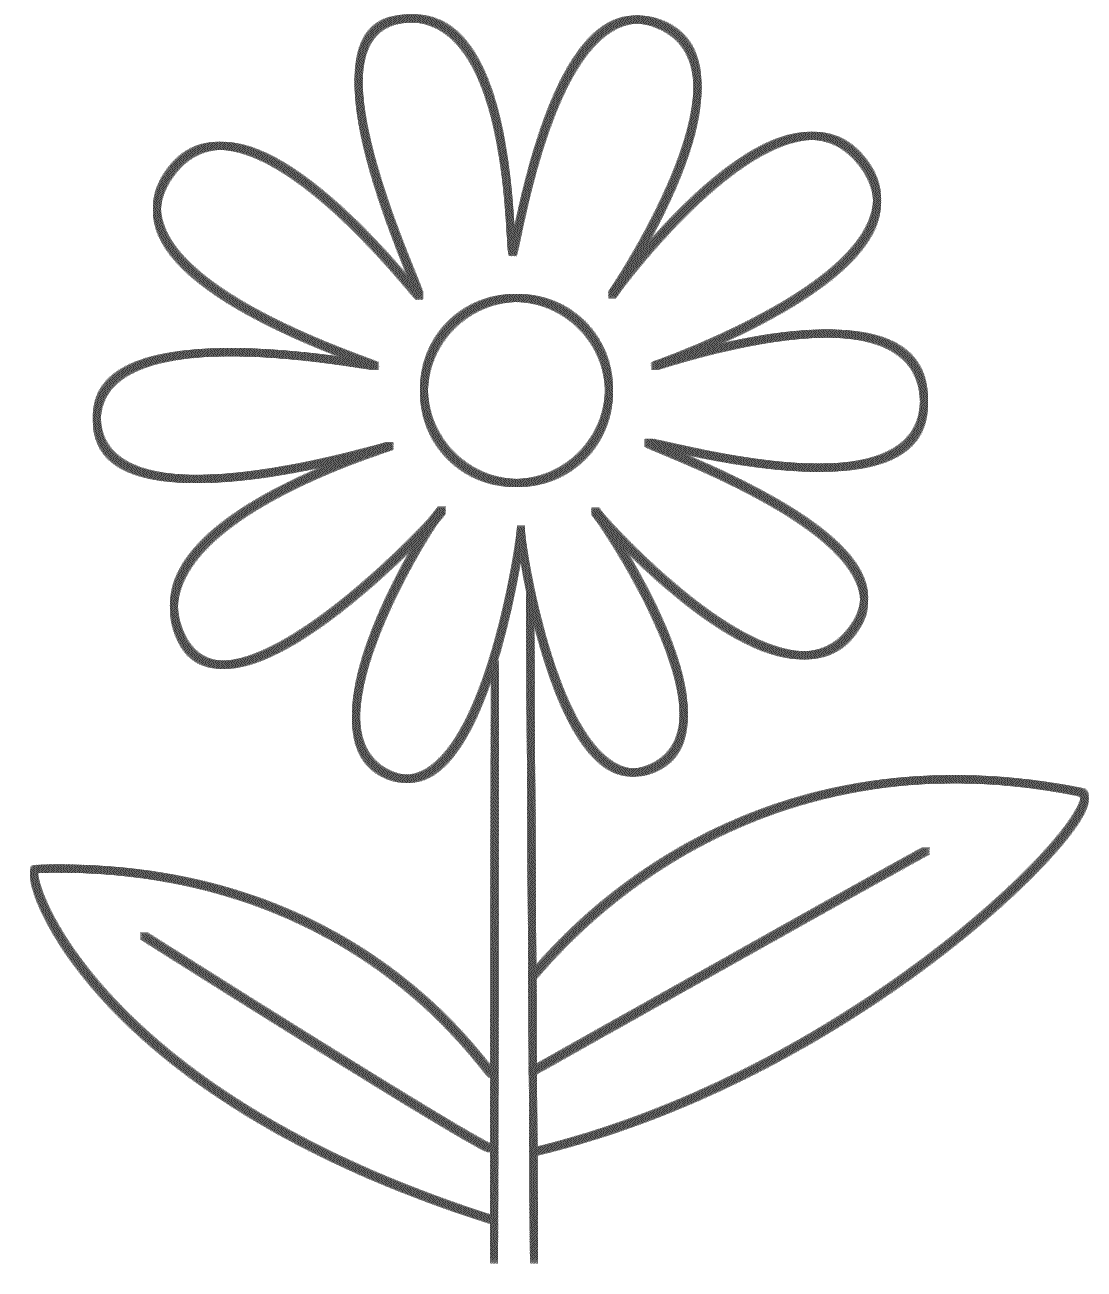 Download Easy Printable Flower Coloring Pages Or Print Easy Printable Flower Coloring Pa Printable Flower Coloring Pages Spring Coloring Pages Flower Printable